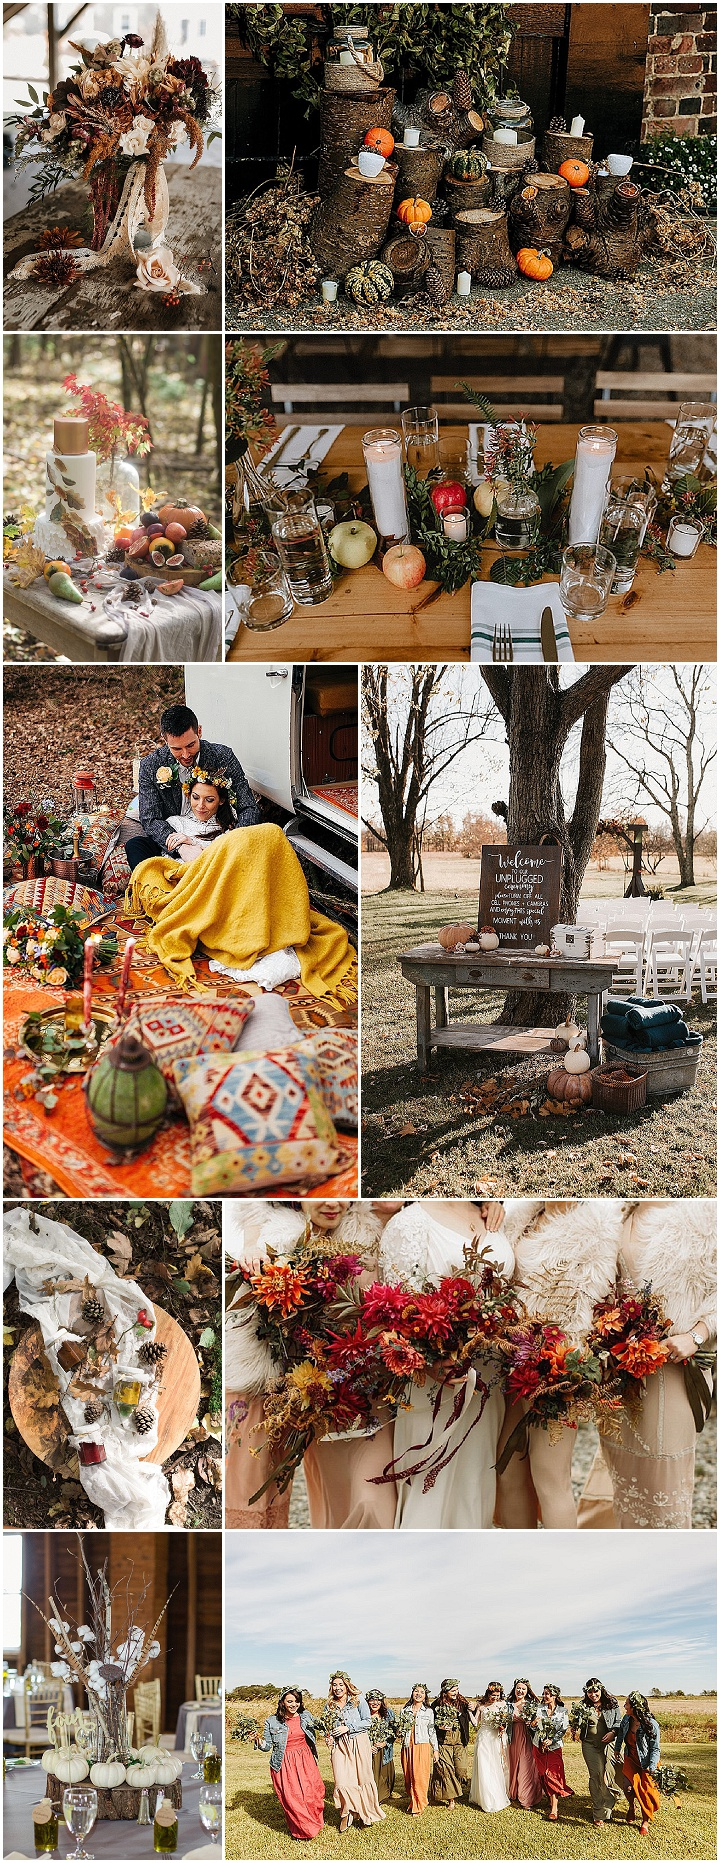 Boho Pins: The Best of Boho – My Top 10 Autumn Weddings Ideas